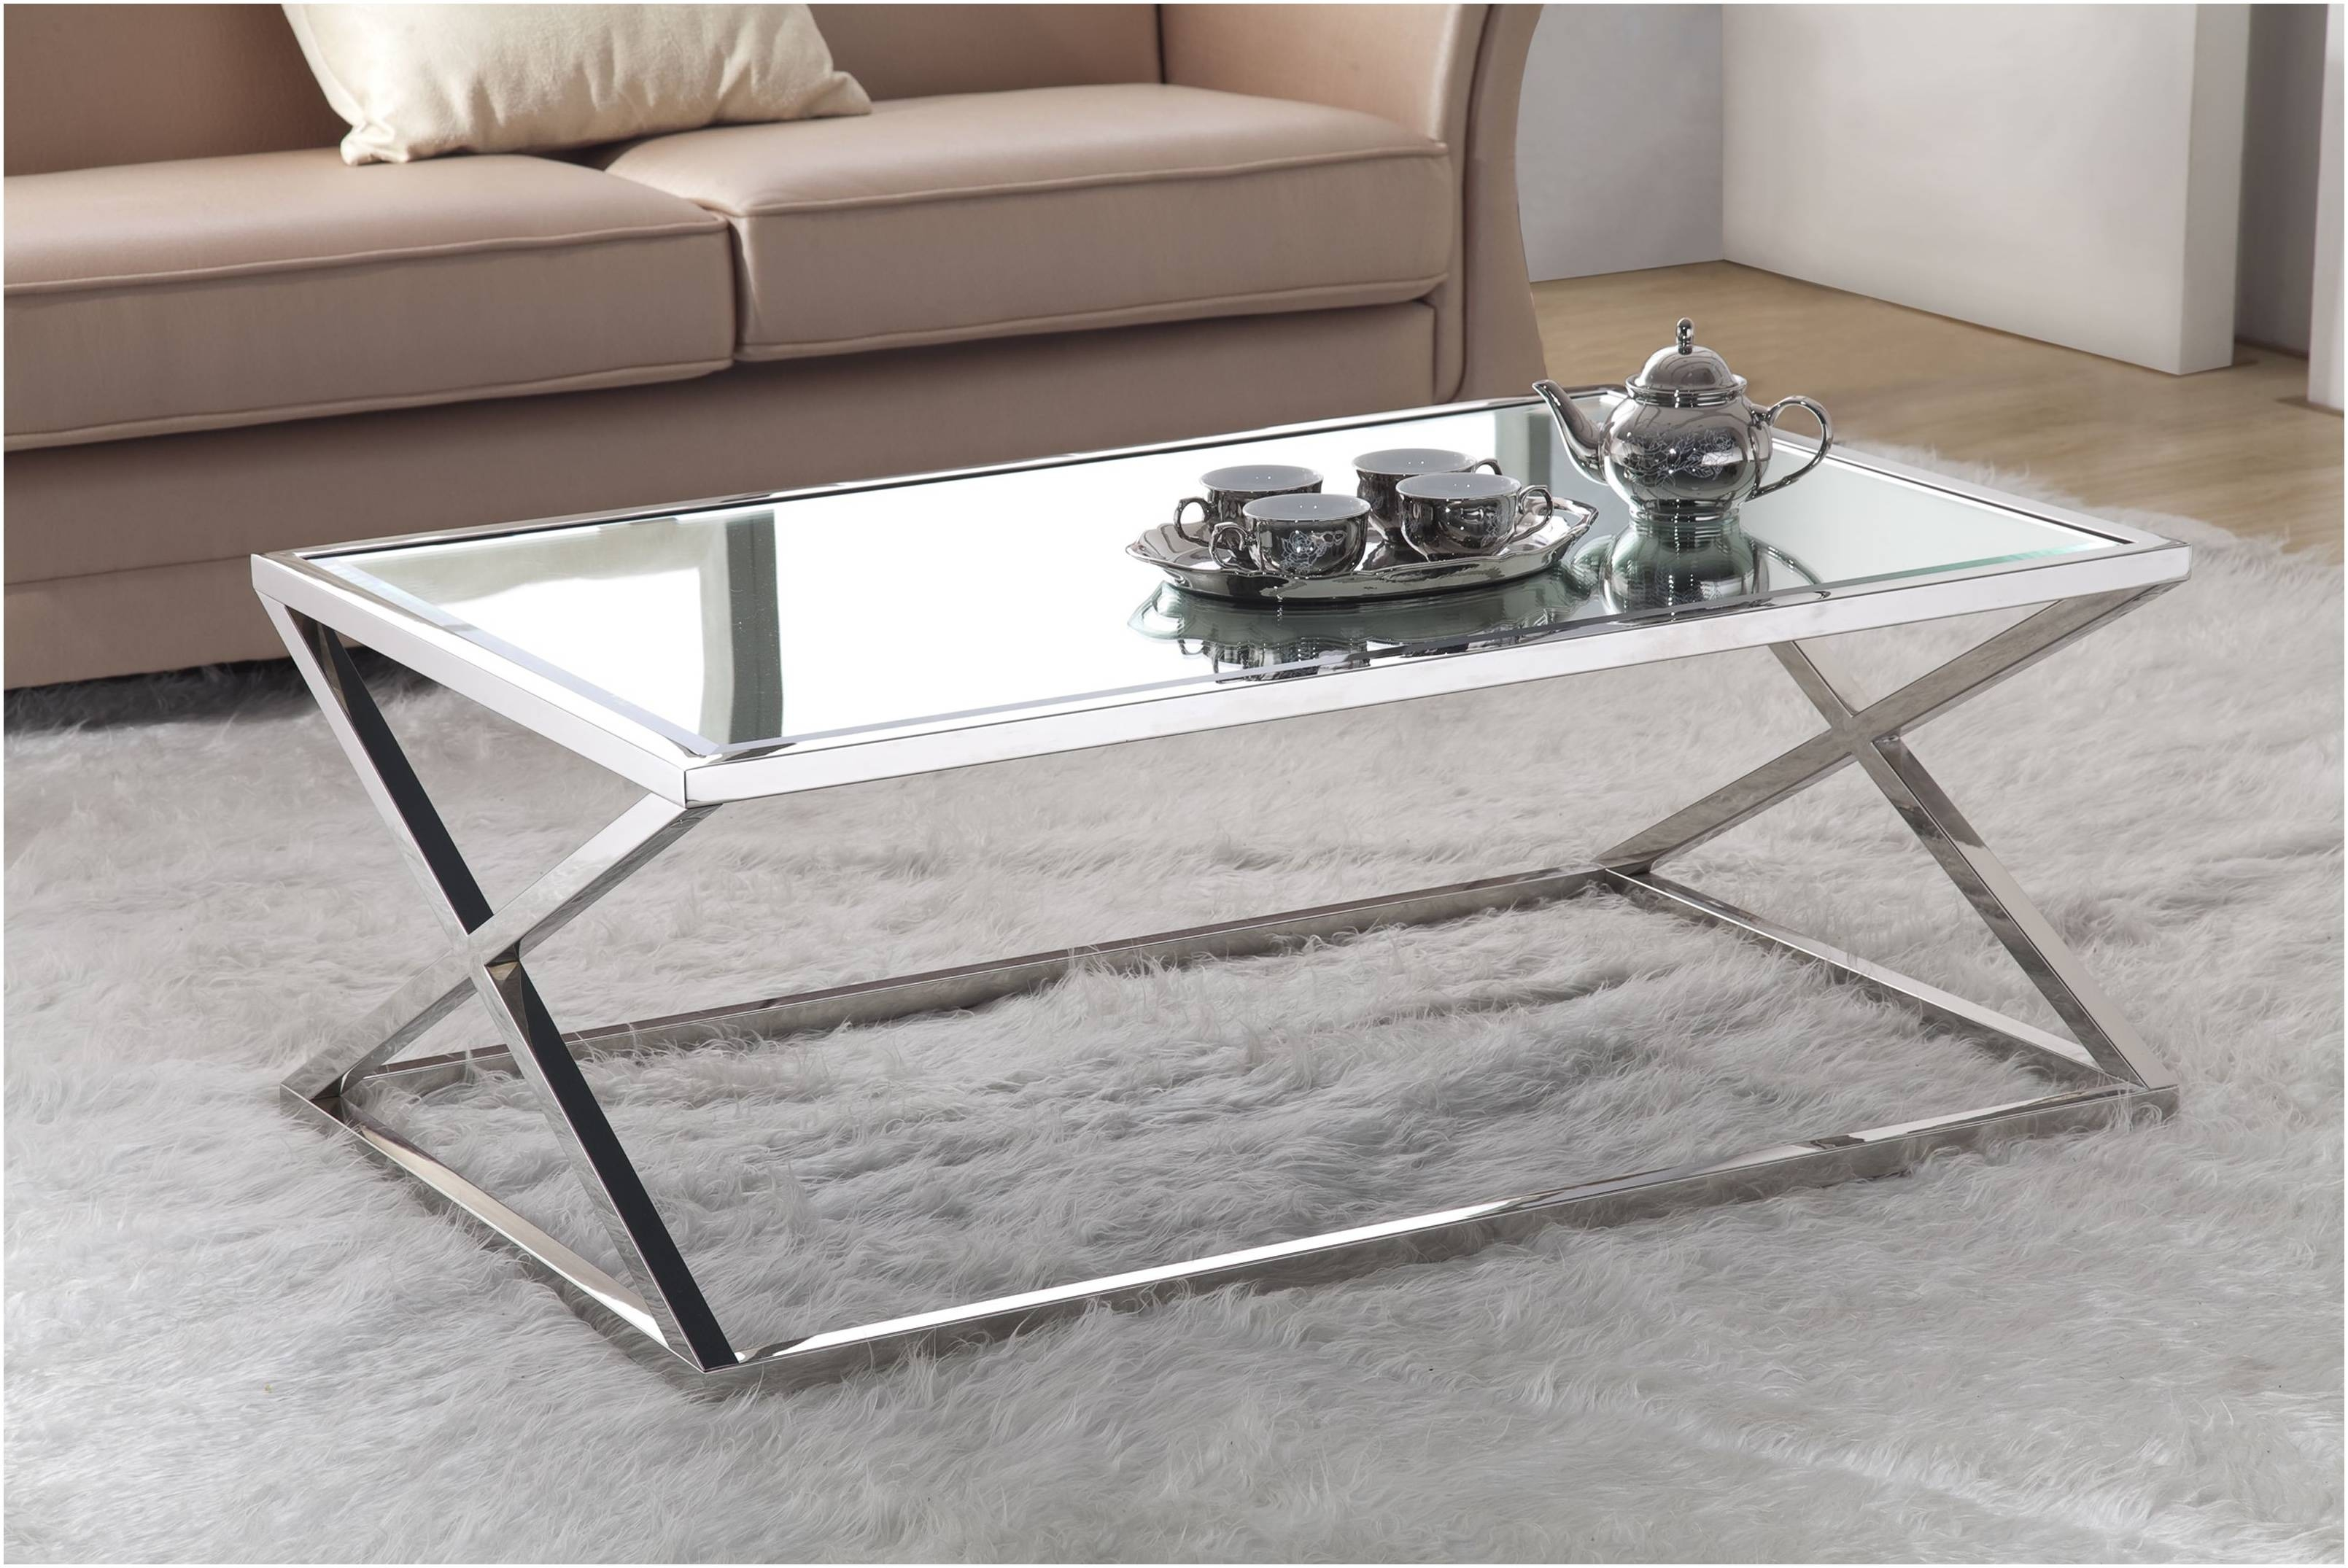 Coffee Table Contemporary Tempered Glass – Cocinacentral.co inside Contemporary Glass Coffee Tables (Image 5 of 30)